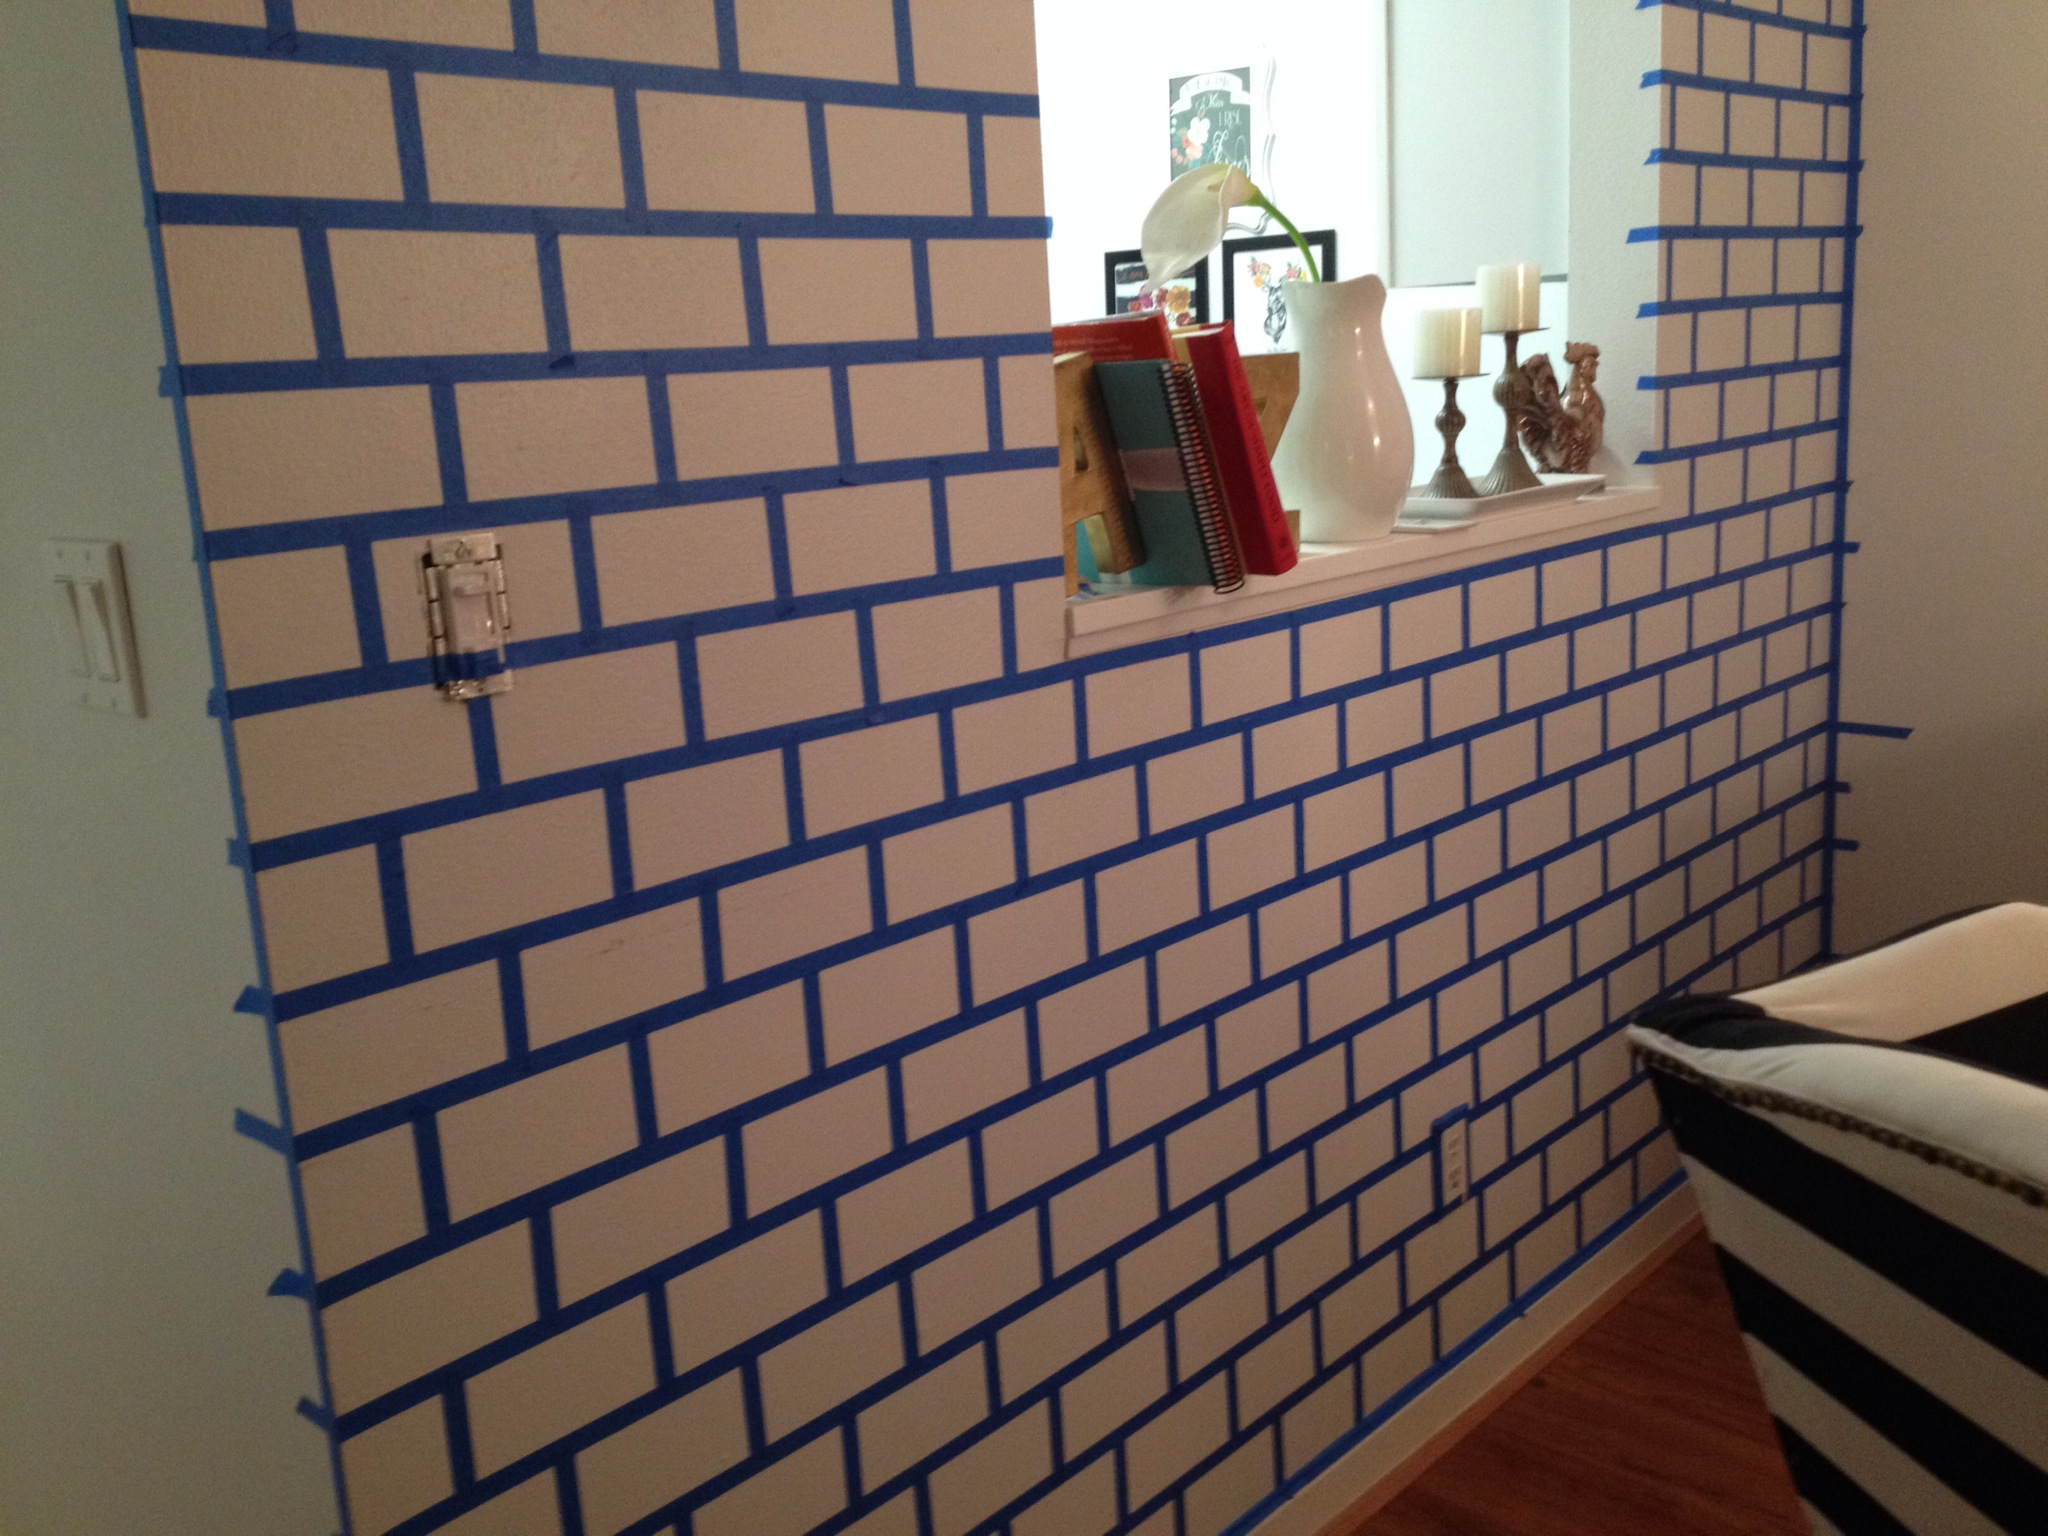 DIY Painted Brick Wall - The Glamorous Project on Brick Painting Ideas  id=70457